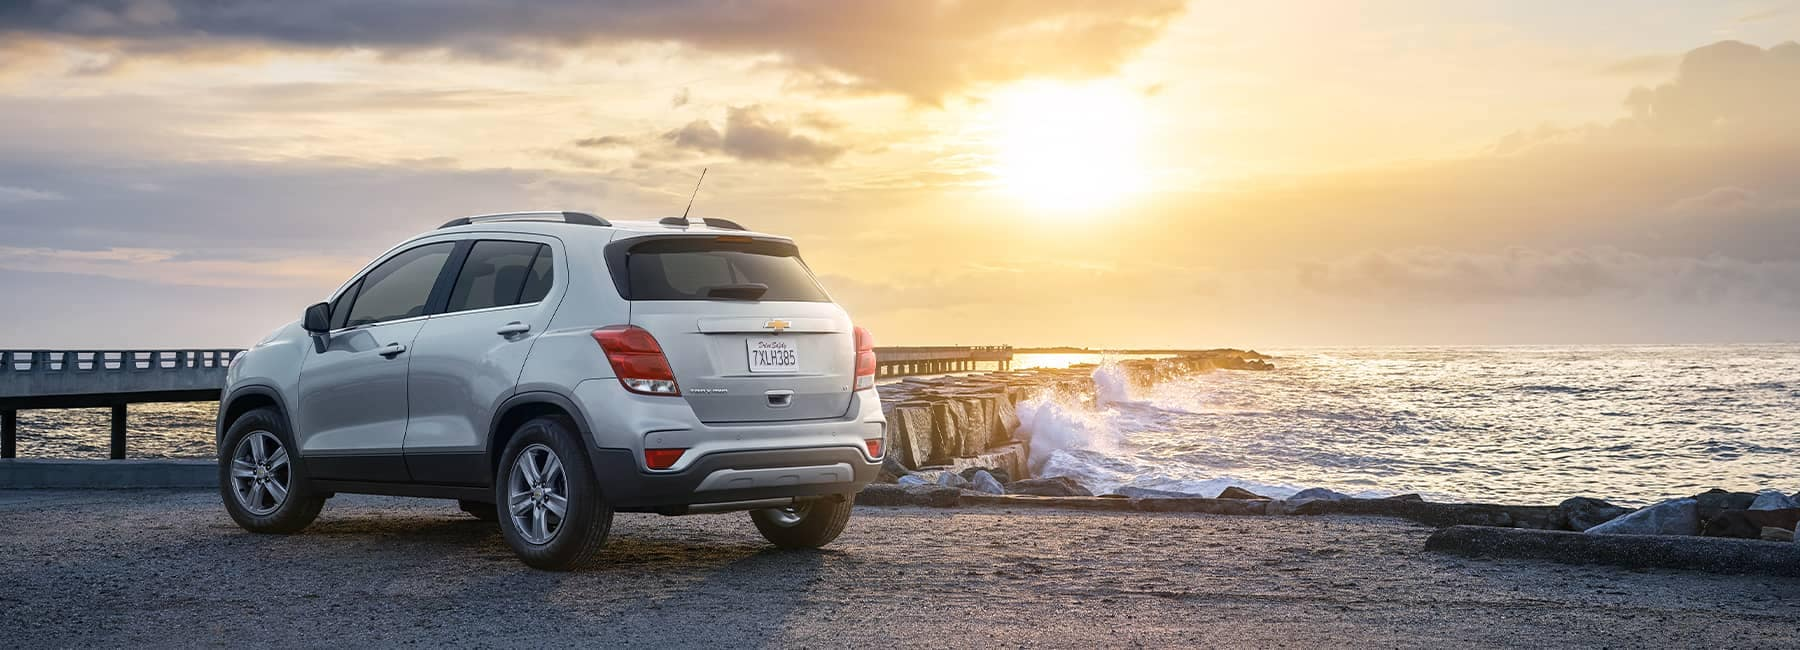 Rear view of a white 2021 Chevrolet Trax parked in front of an ocean pier